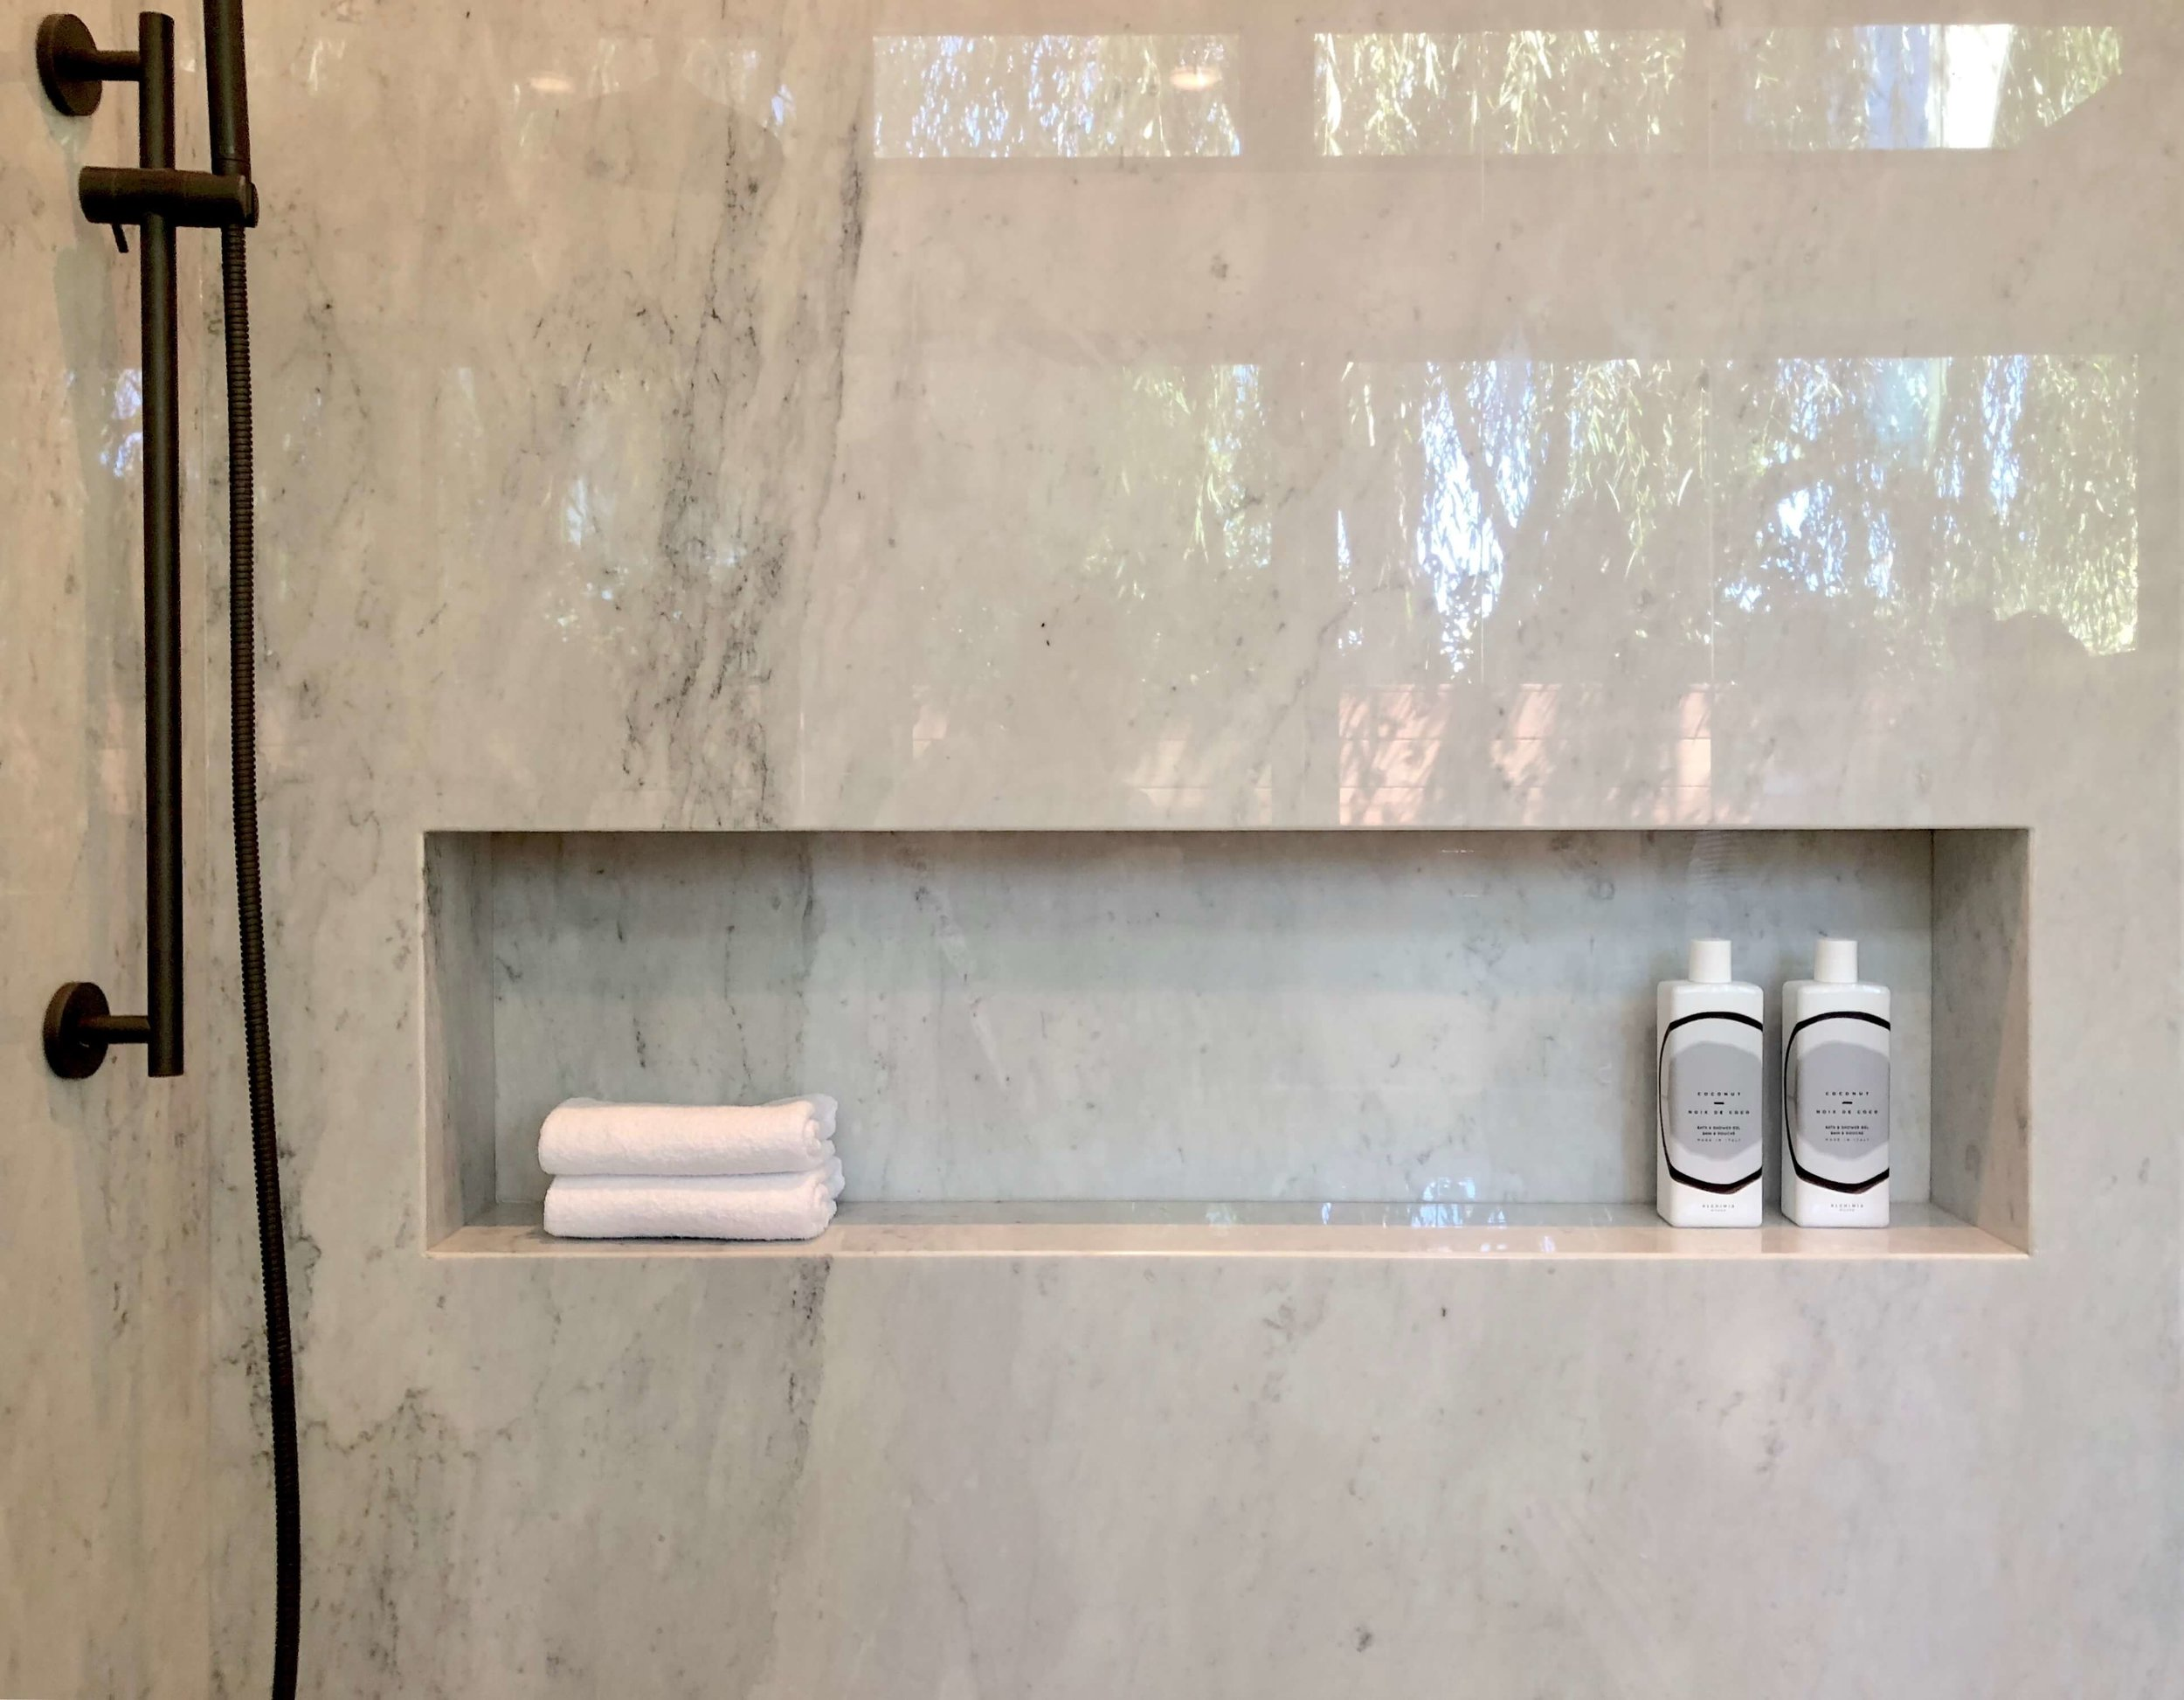 Master bath shampoo niche in California contemporary home, Dwell on Design's Fall Home Tour, Designer: Vitus Matare #bathroomideas #bathroomdesign